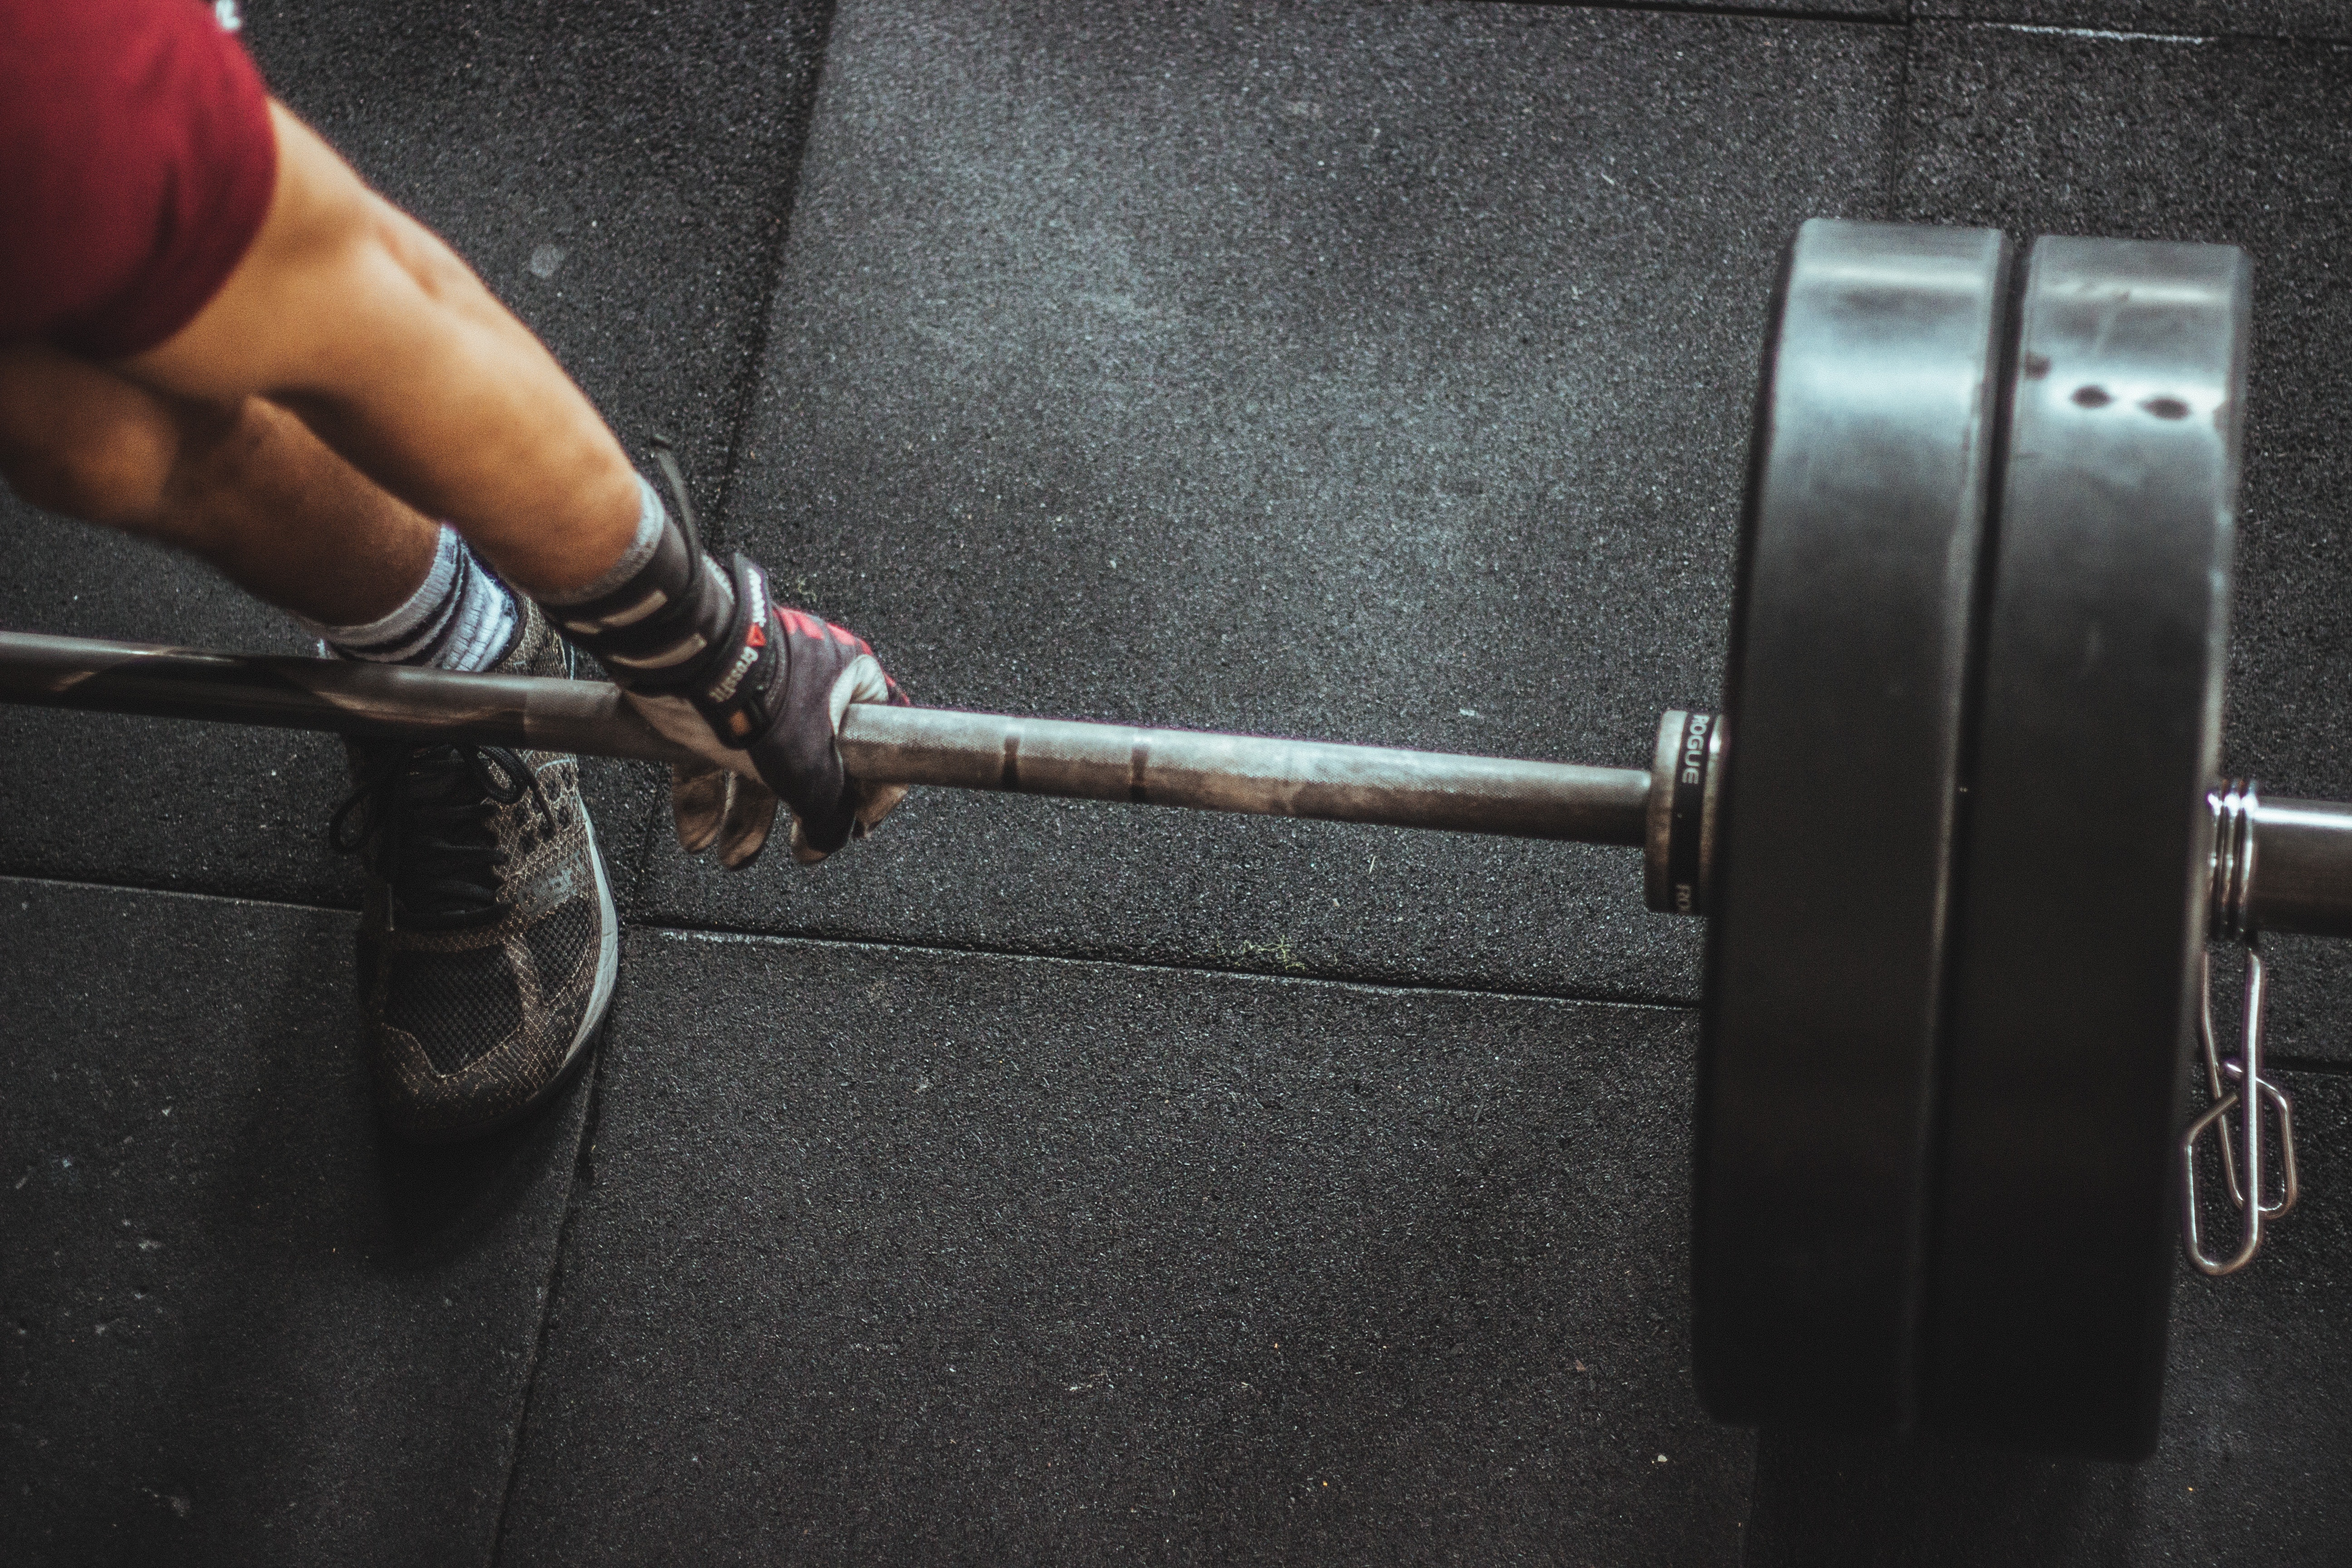 Person in Red Shirt Lifting a Barbell, Barbell, Brawny, Gym, Hand, HQ Photo